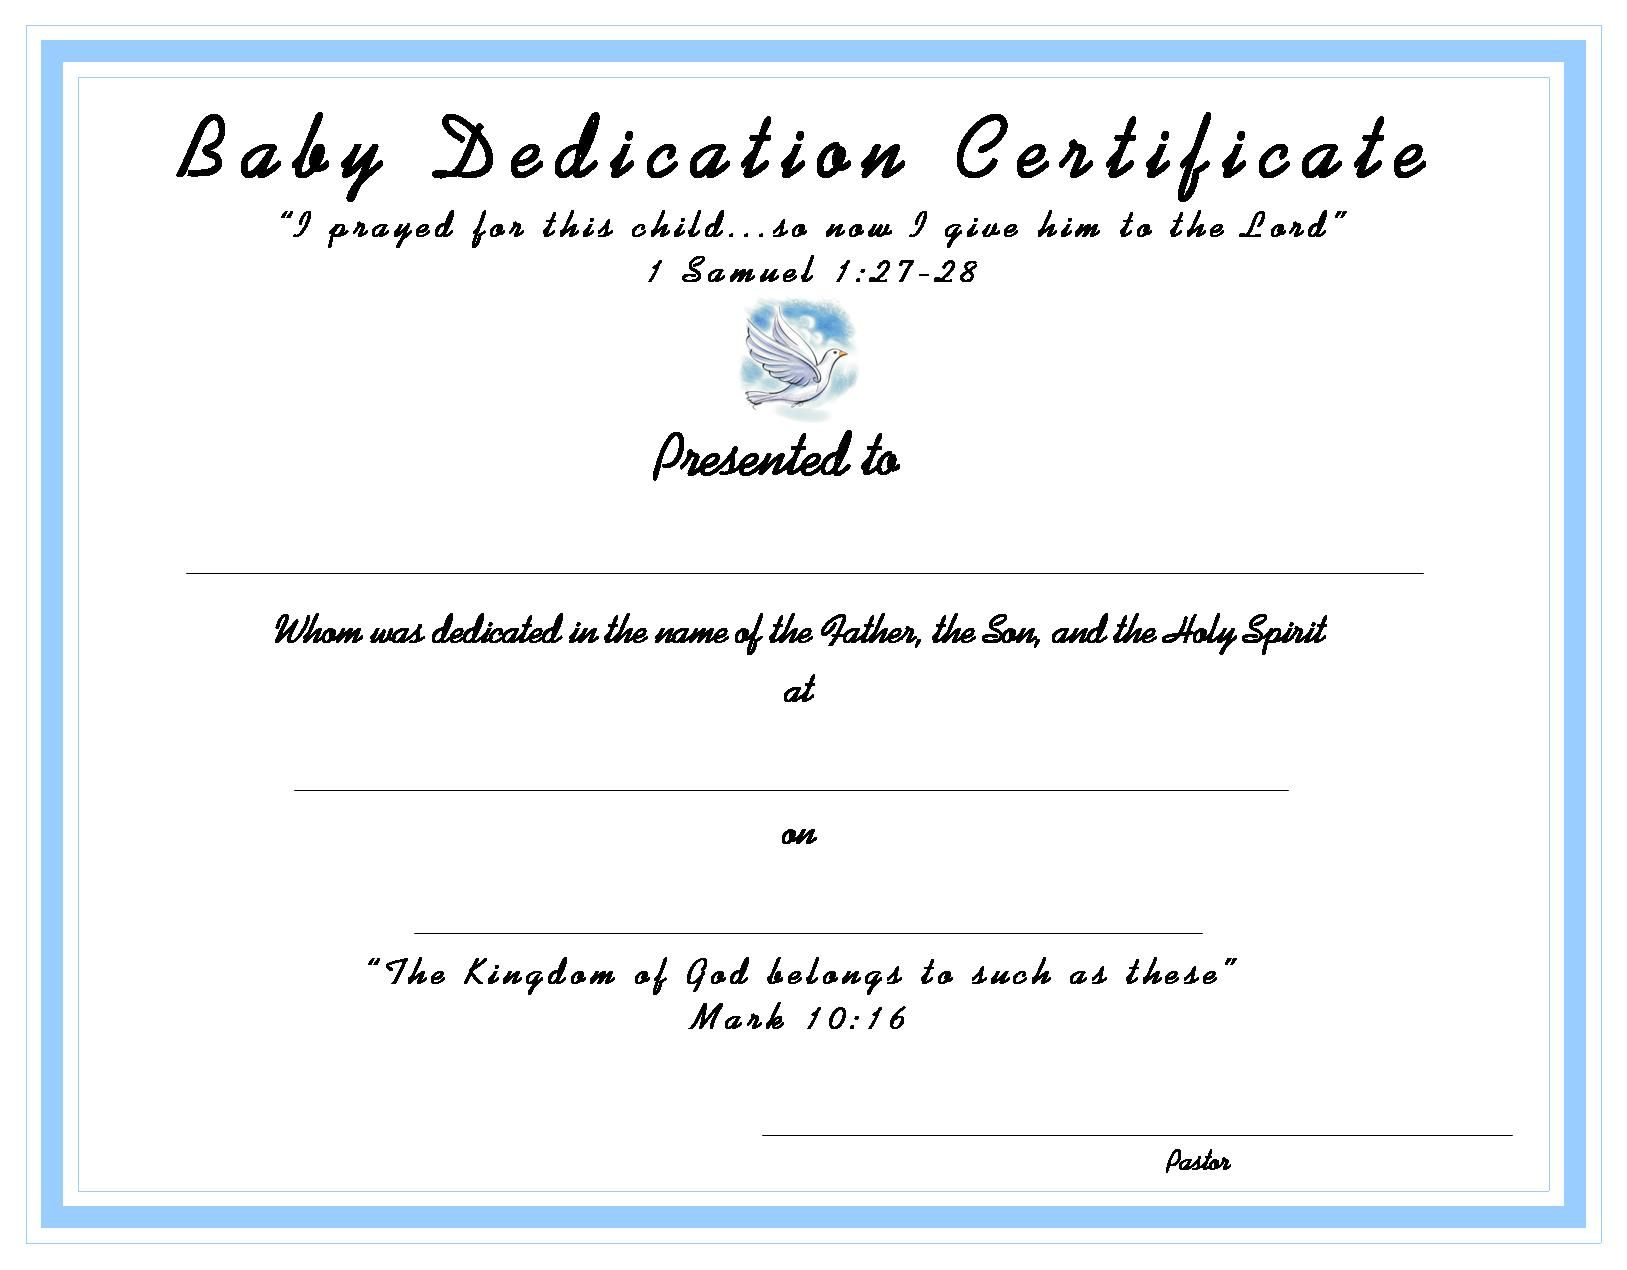 Certificatetemplate baby dedication certificate for your certificate template for kids free printable certificate templates for church baptism certificate templates baby dedication certificate templates yadclub Images